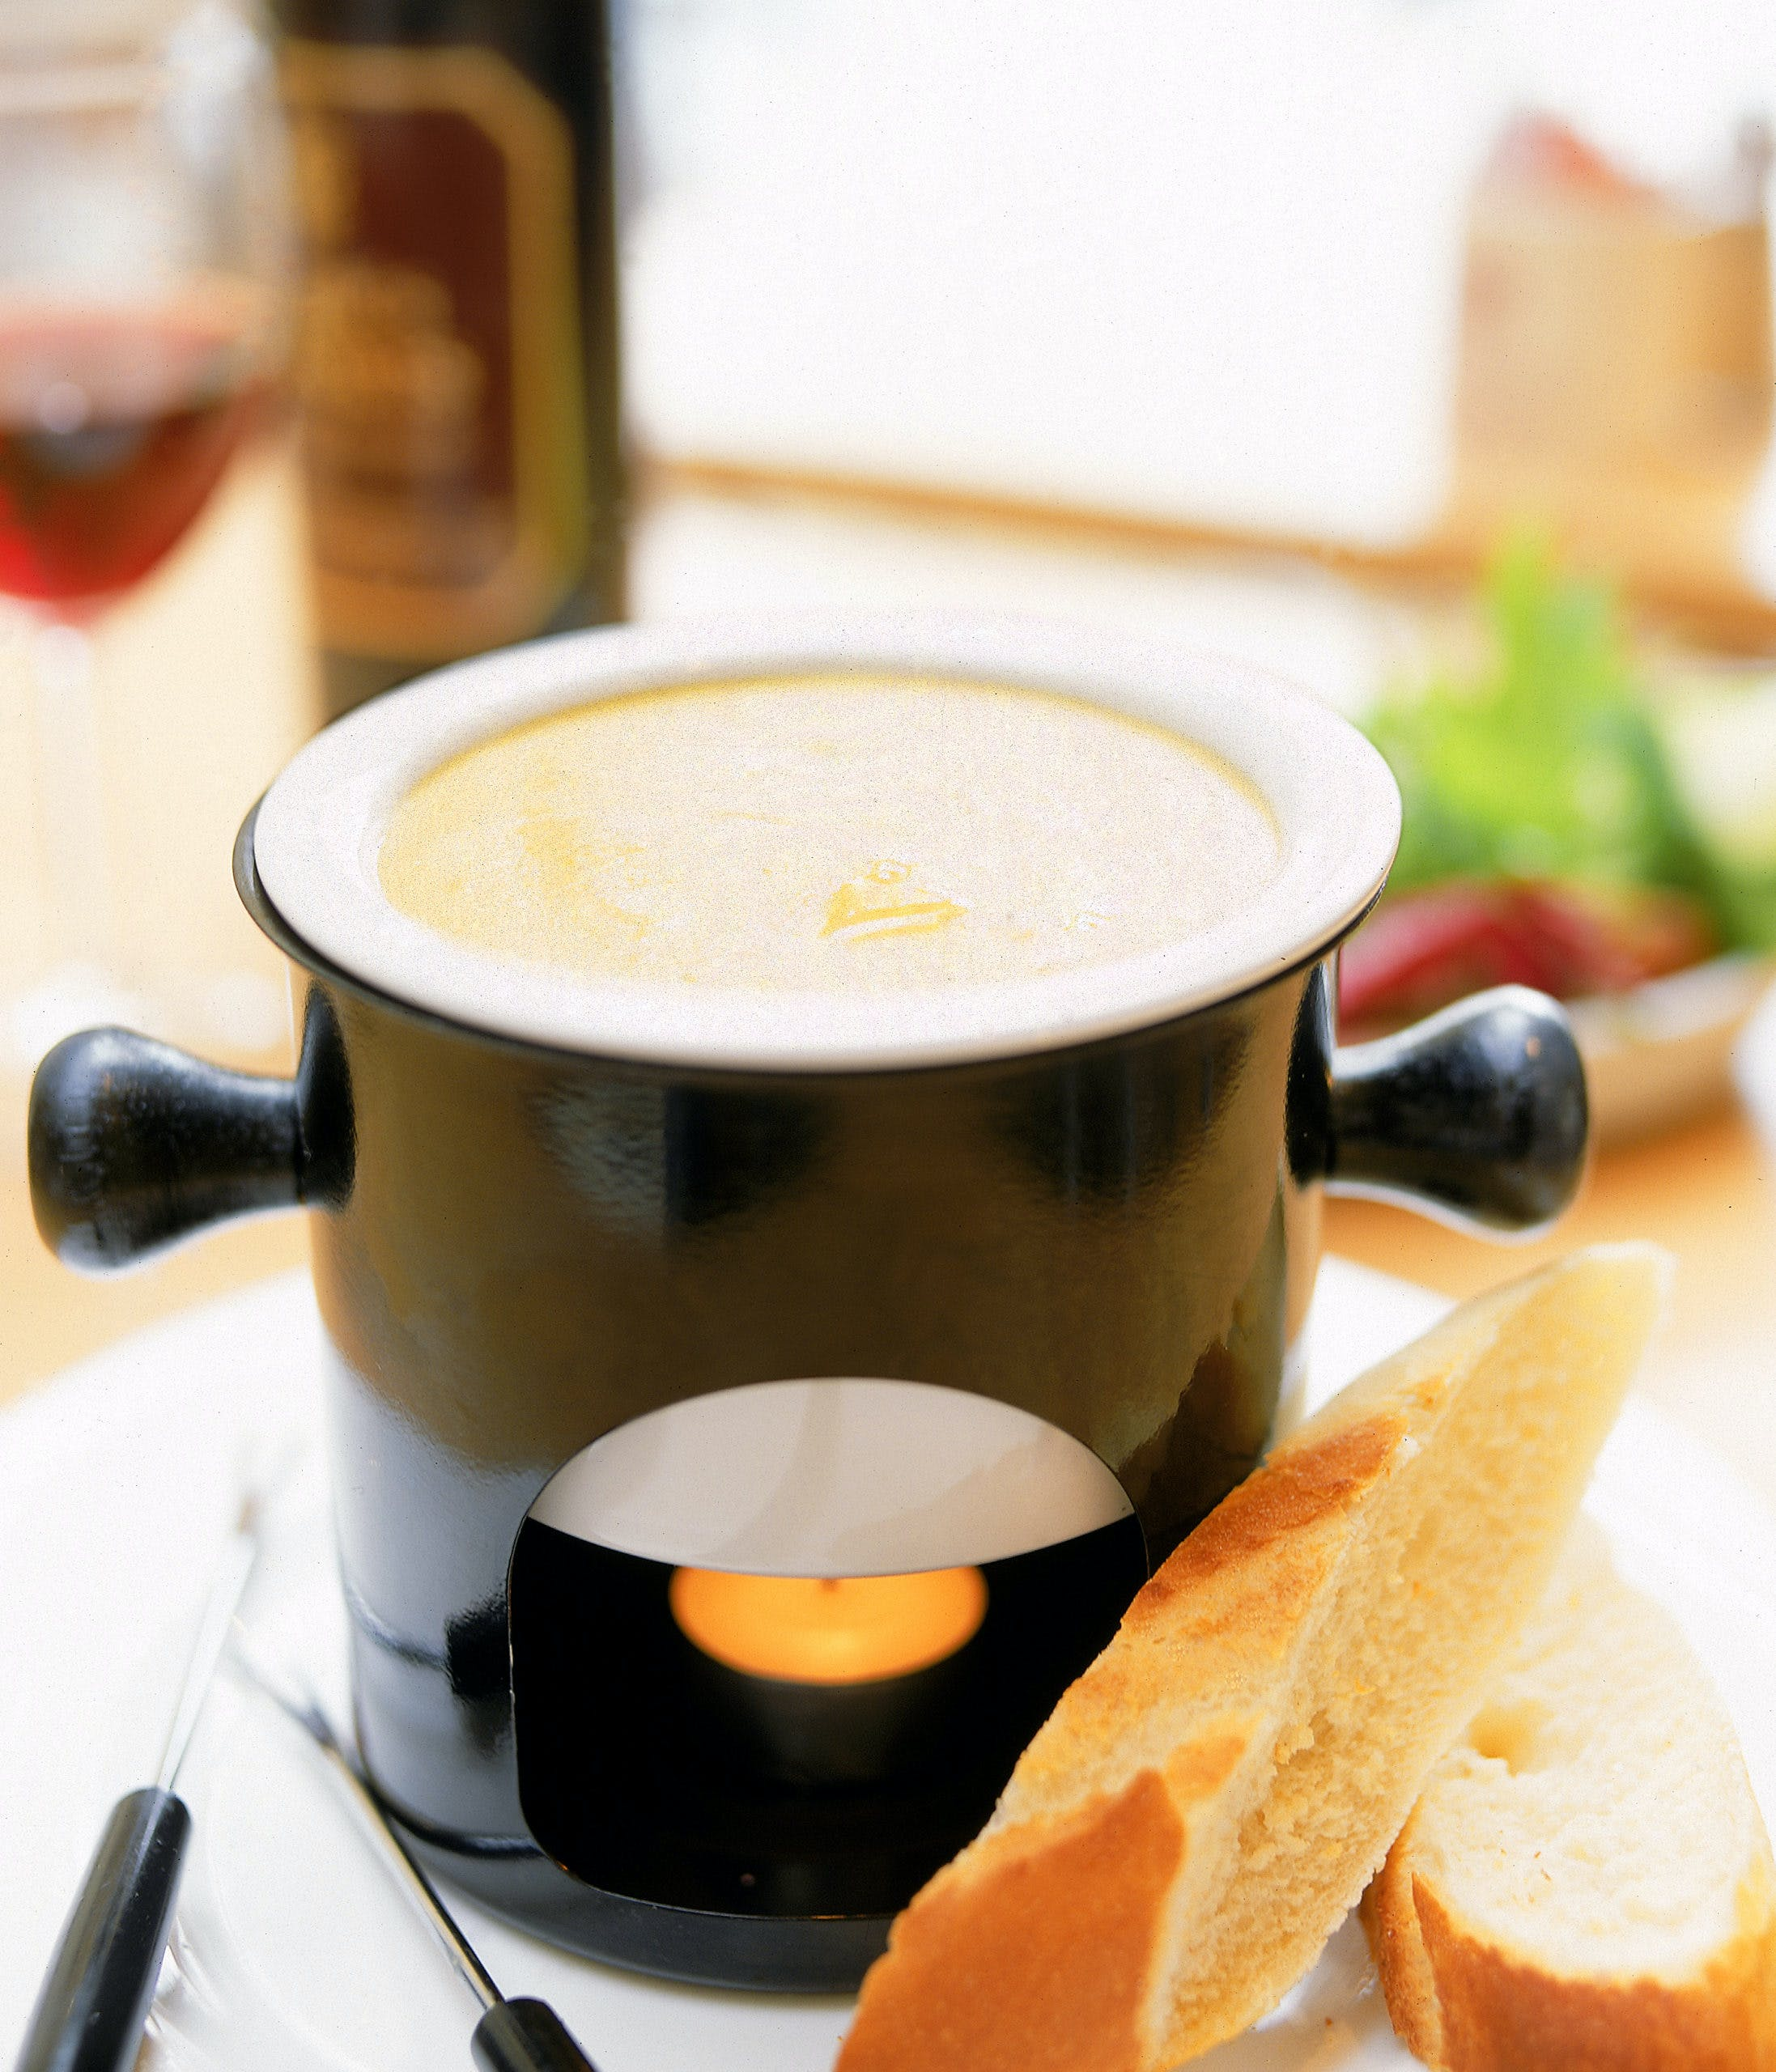 How to Make a Cheese Fondue Without a Fondue Pot